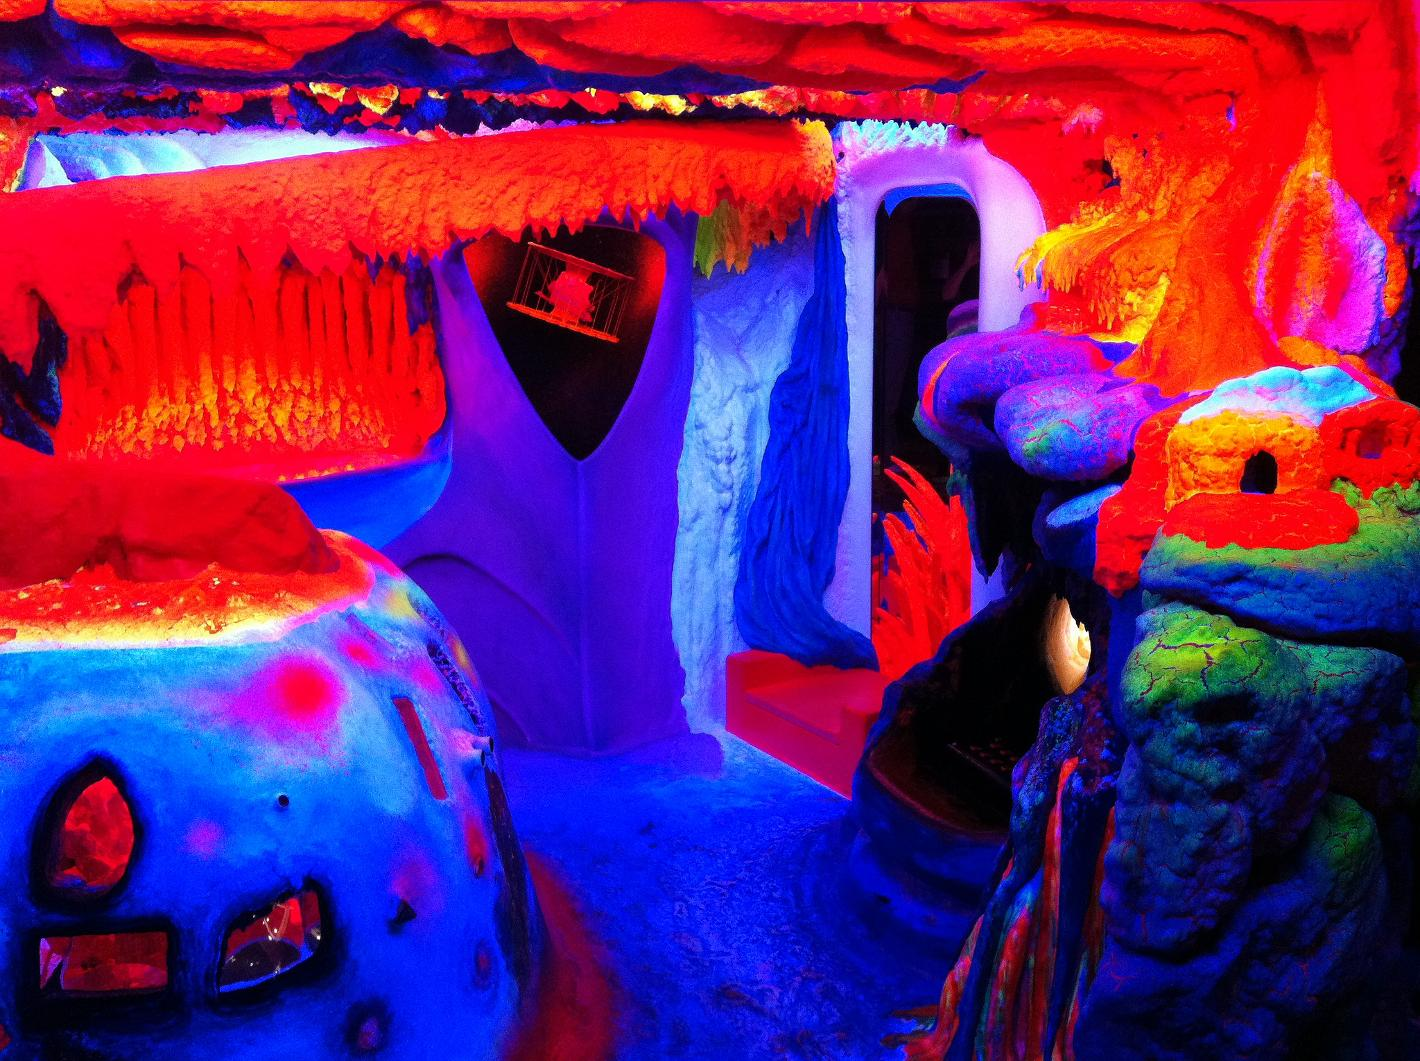 Electric Ladyland in Amsterdam Zien Musea & galleries museum fluor kunst - foto 1